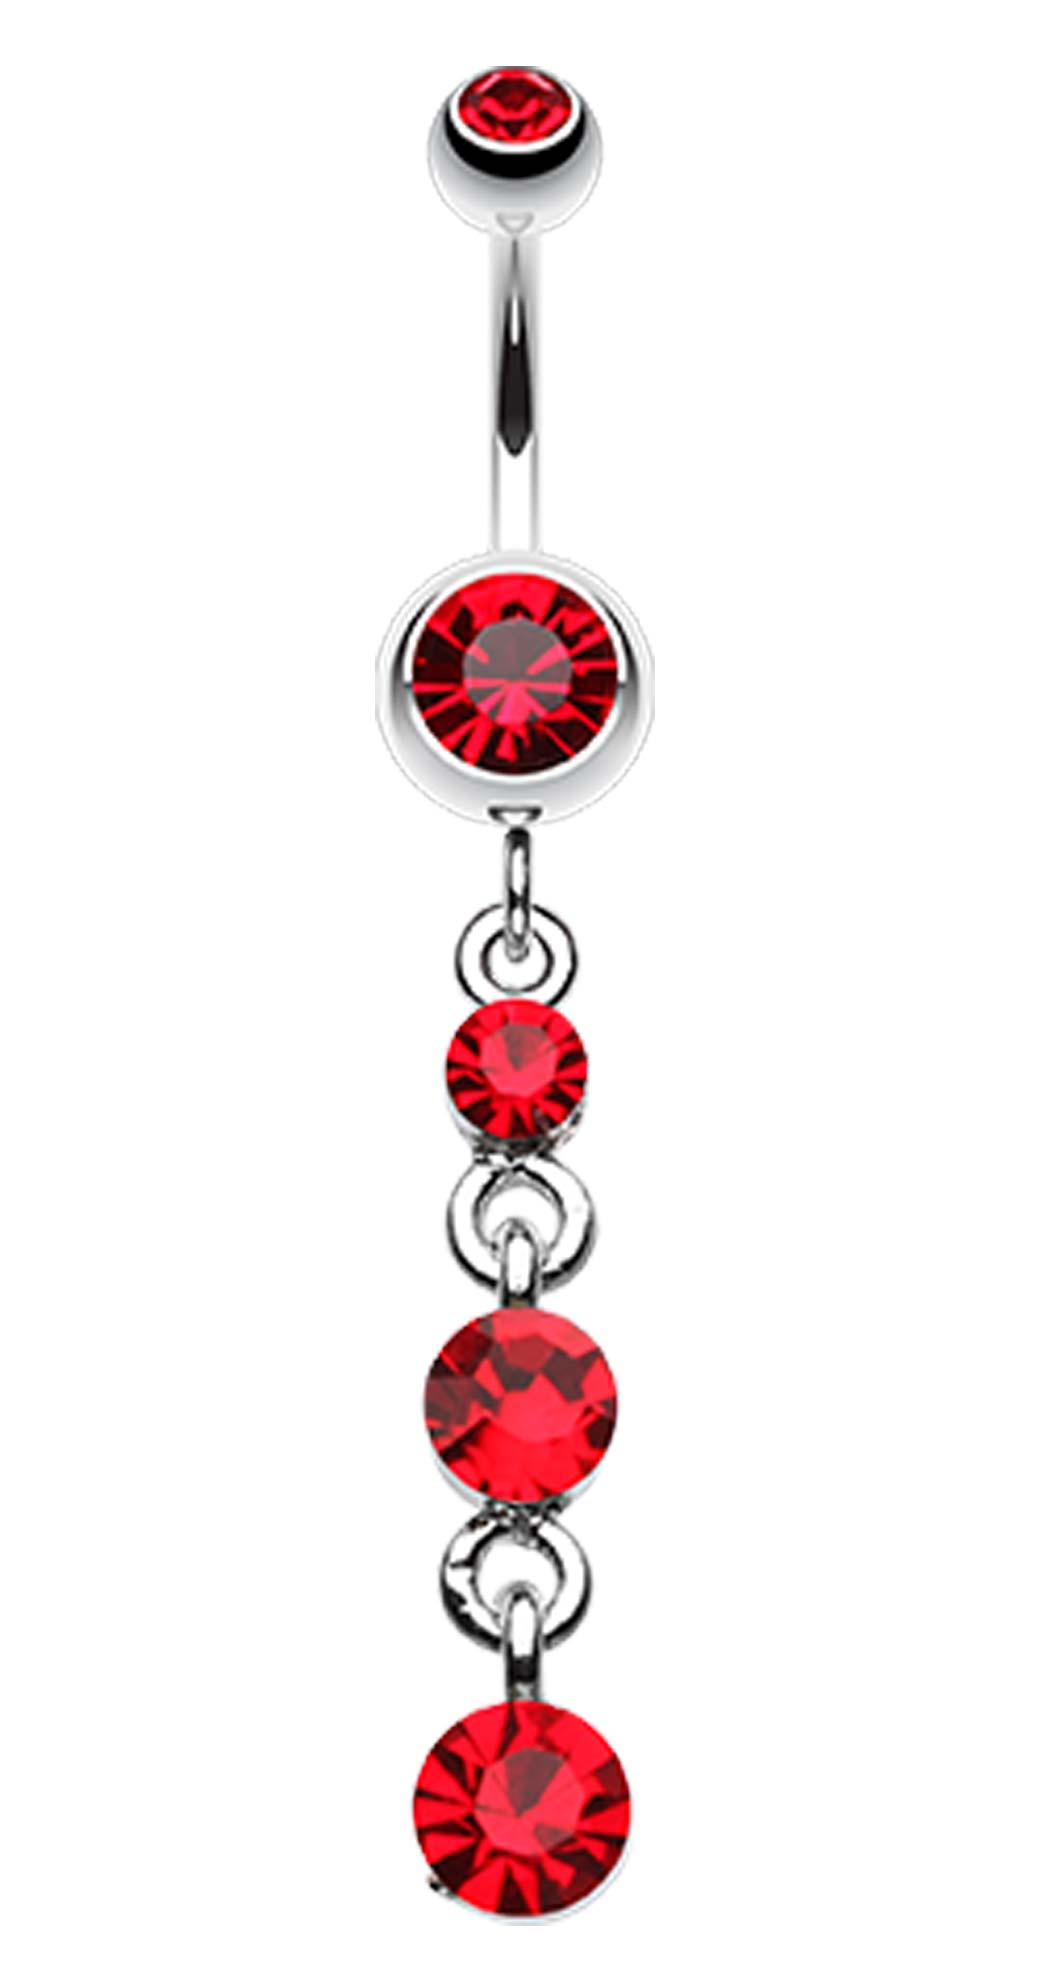 Image of Glass-Gems Galore Belly Button Ring